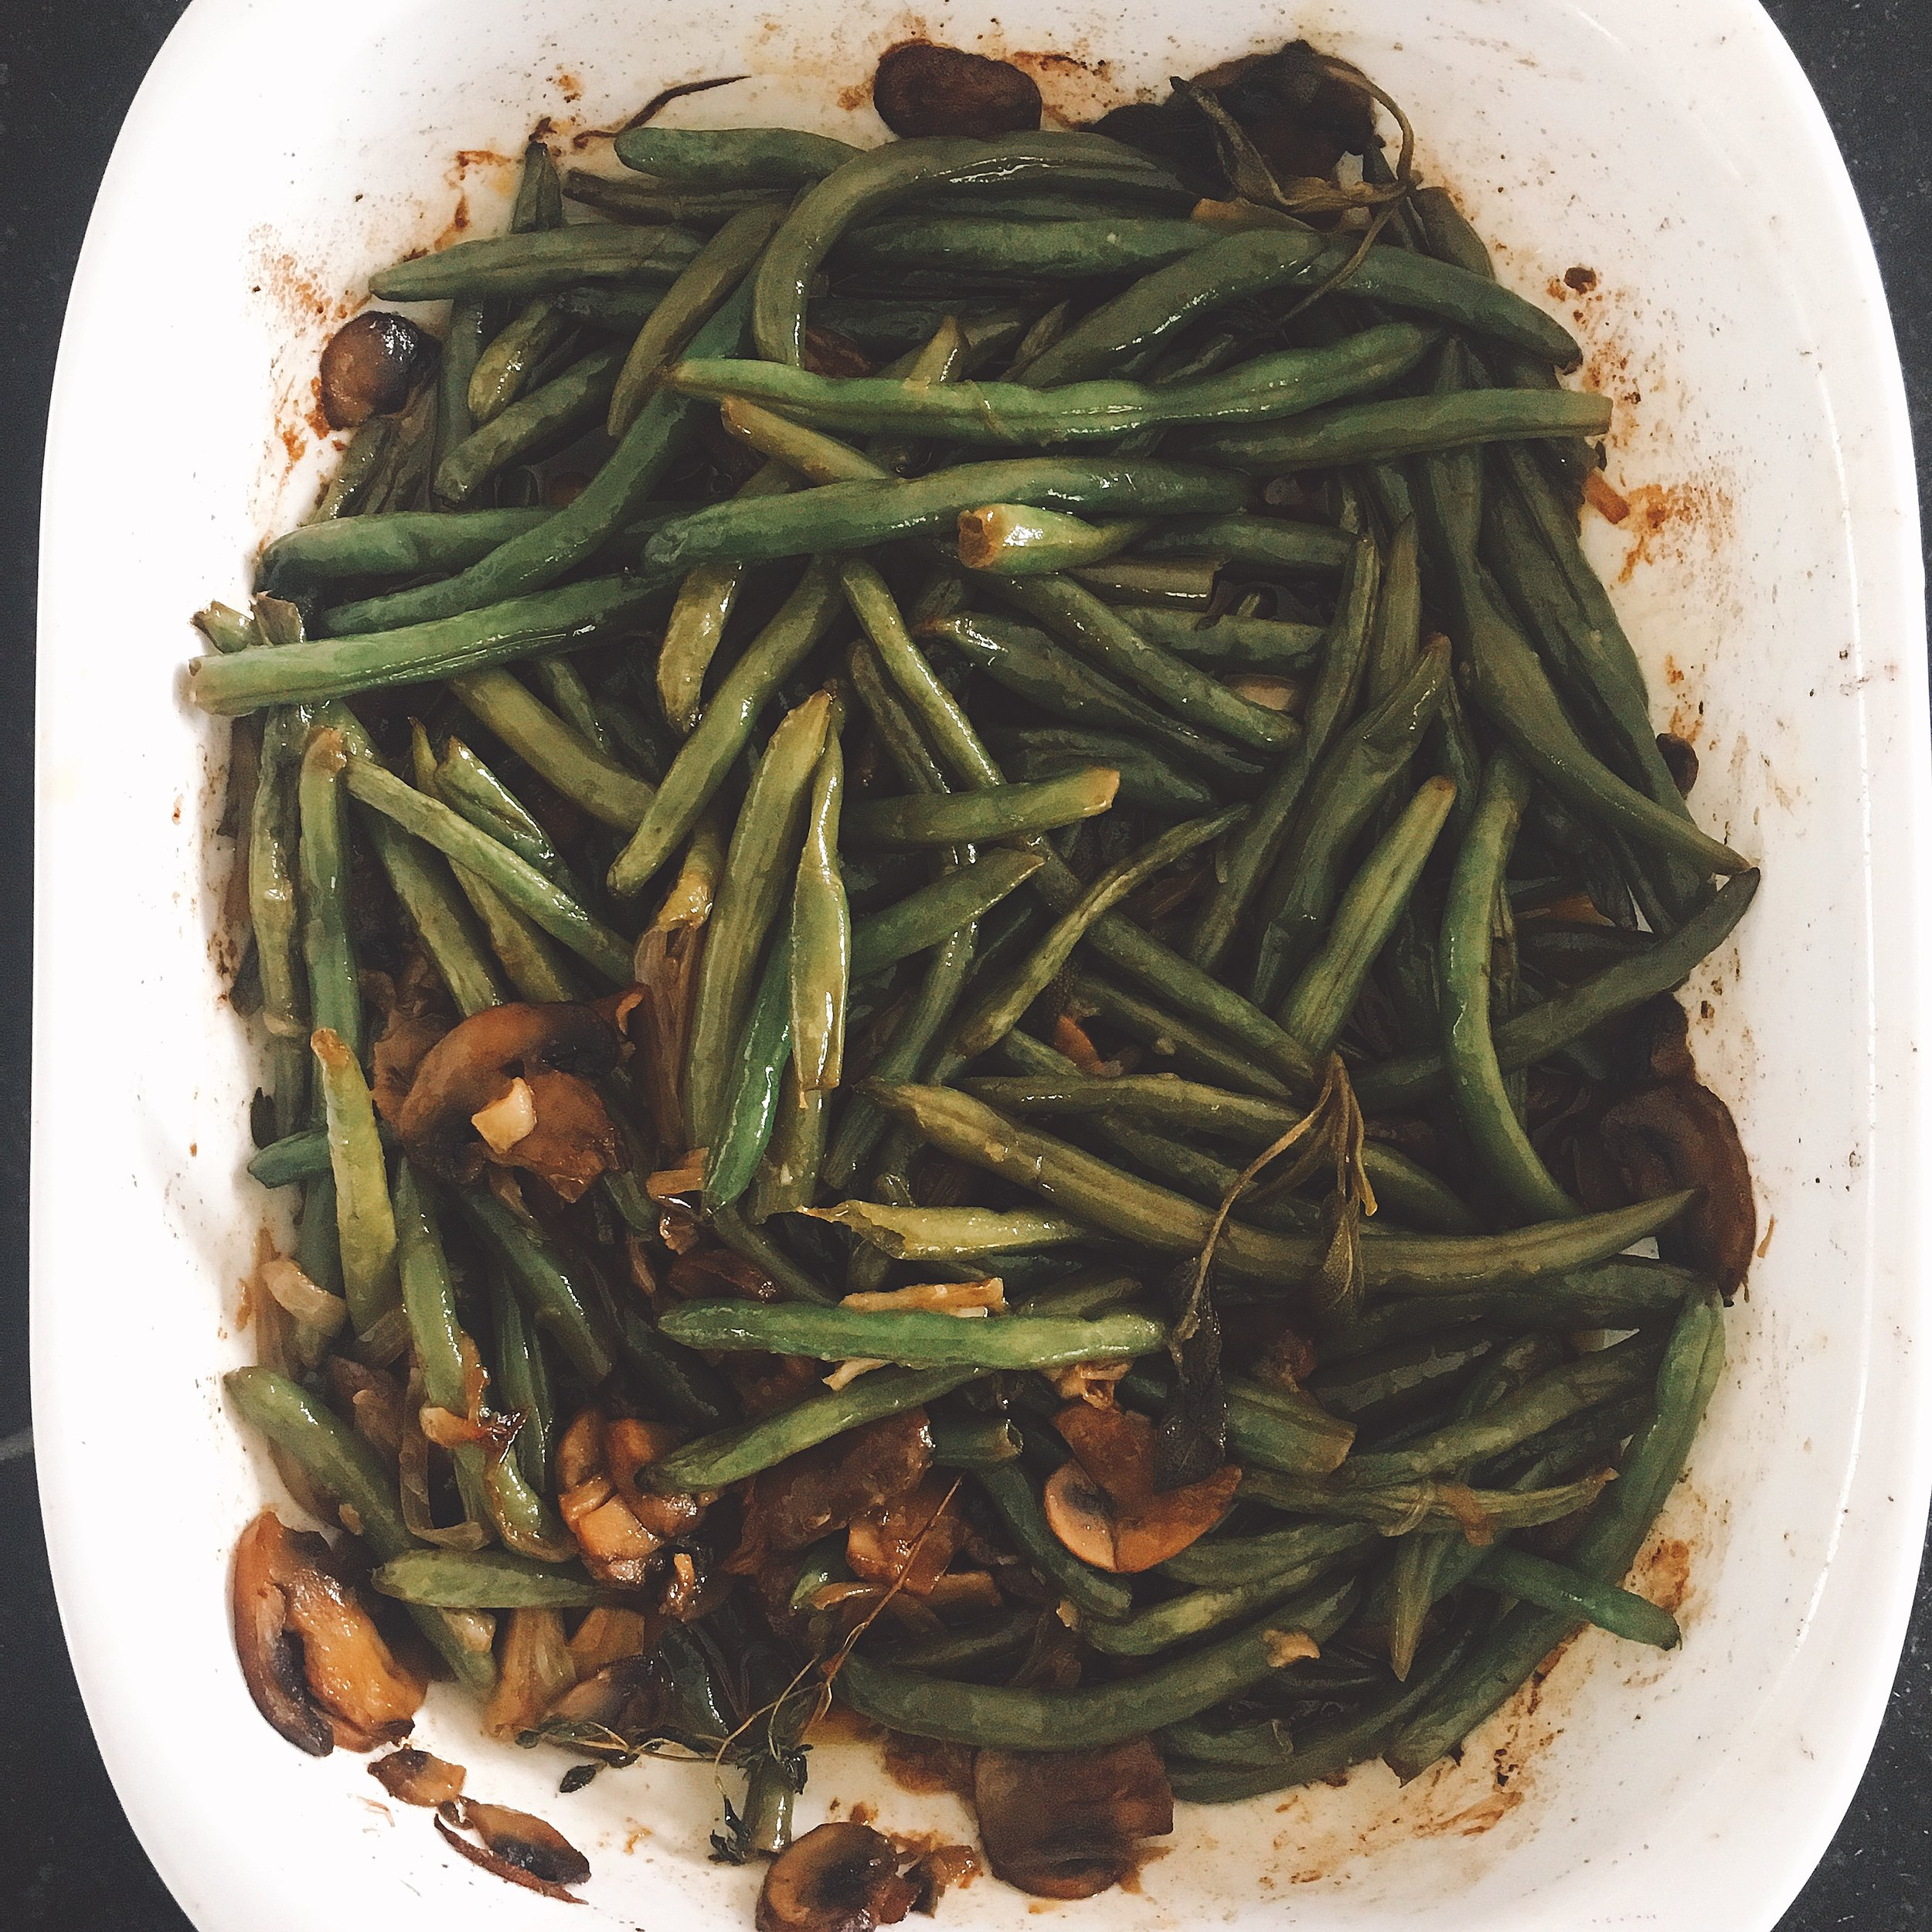 The green beans, mushrooms and shallots…..without the fat, preservatives and calories!